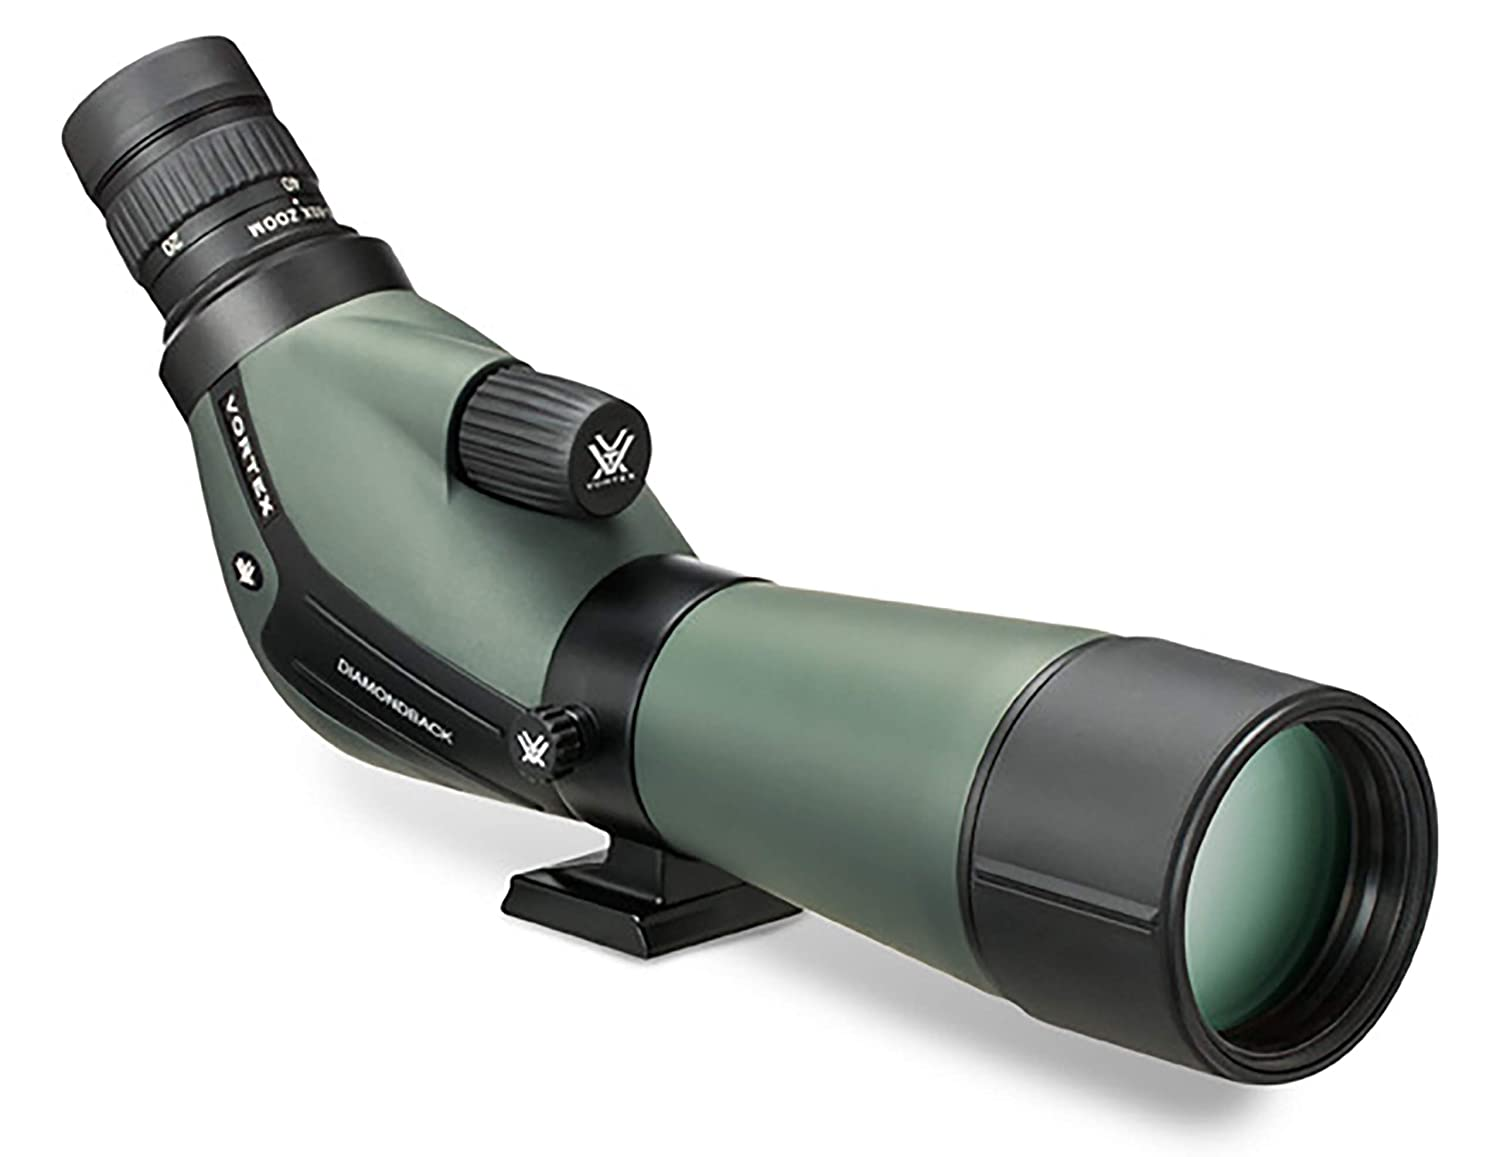 Telescopio terrestre Vortex Optics 20-60x60 angled xmp